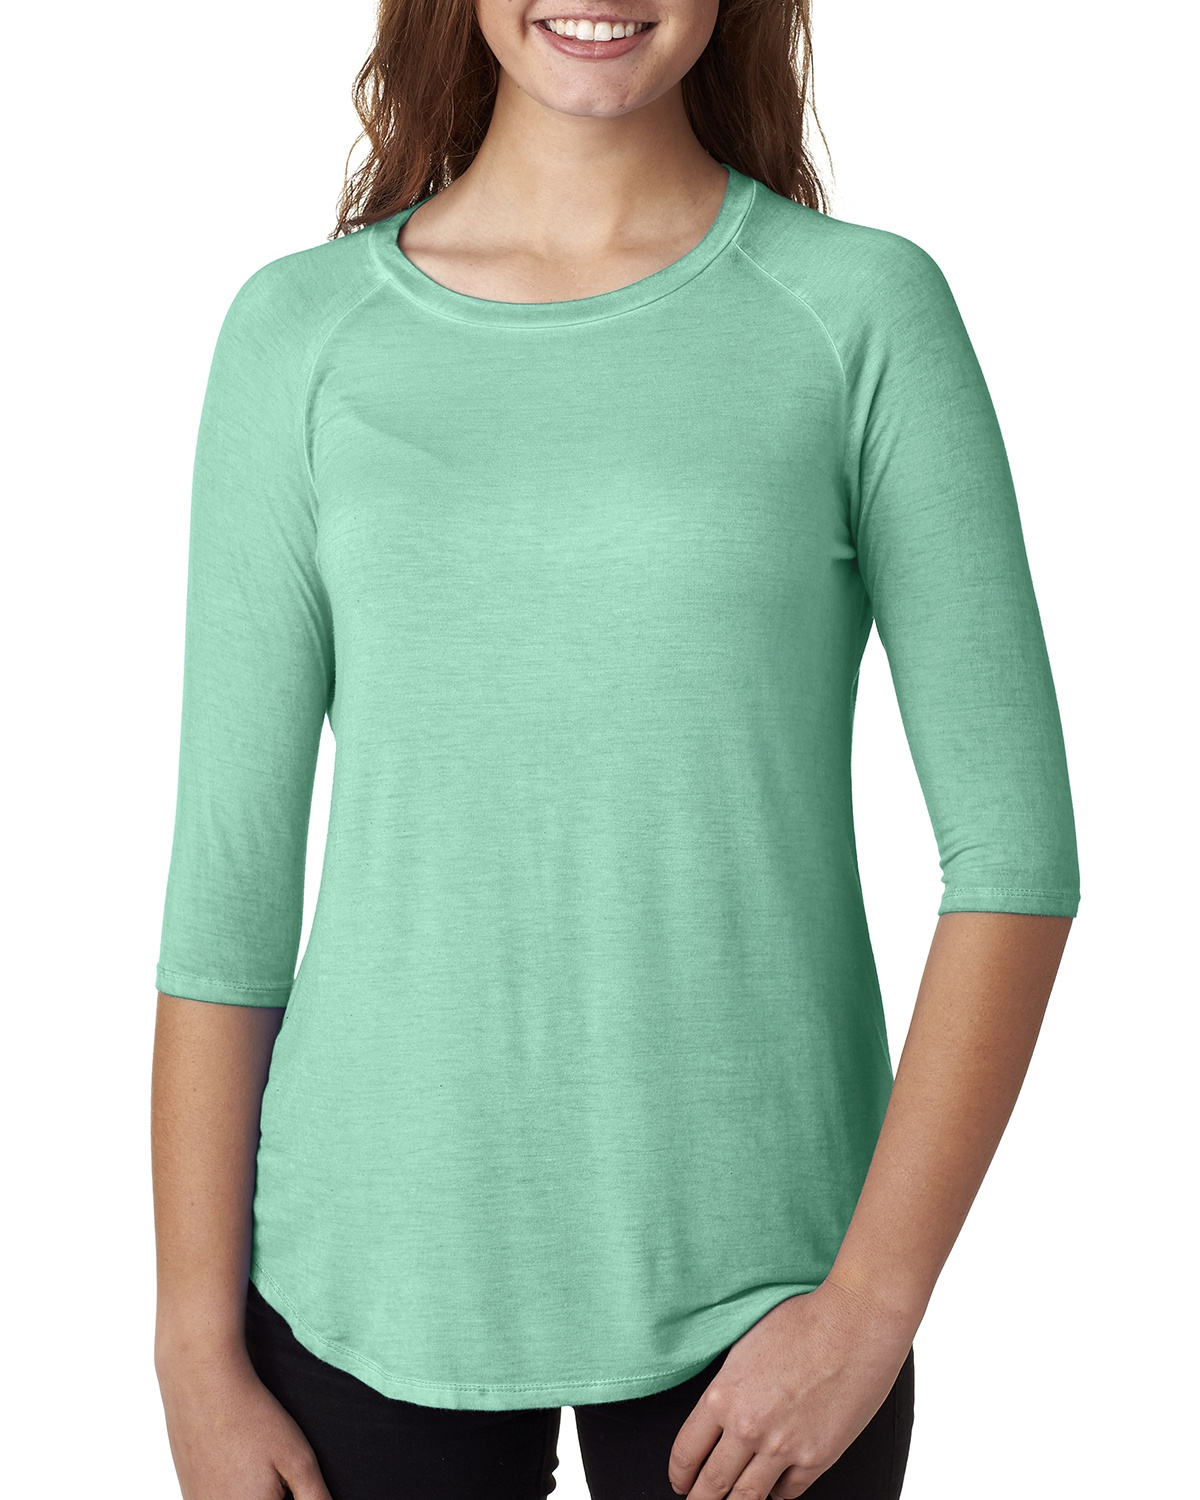 'J America JA8232 Ladies' Oasis Wash 3/4-Sleeve T-Shirt'